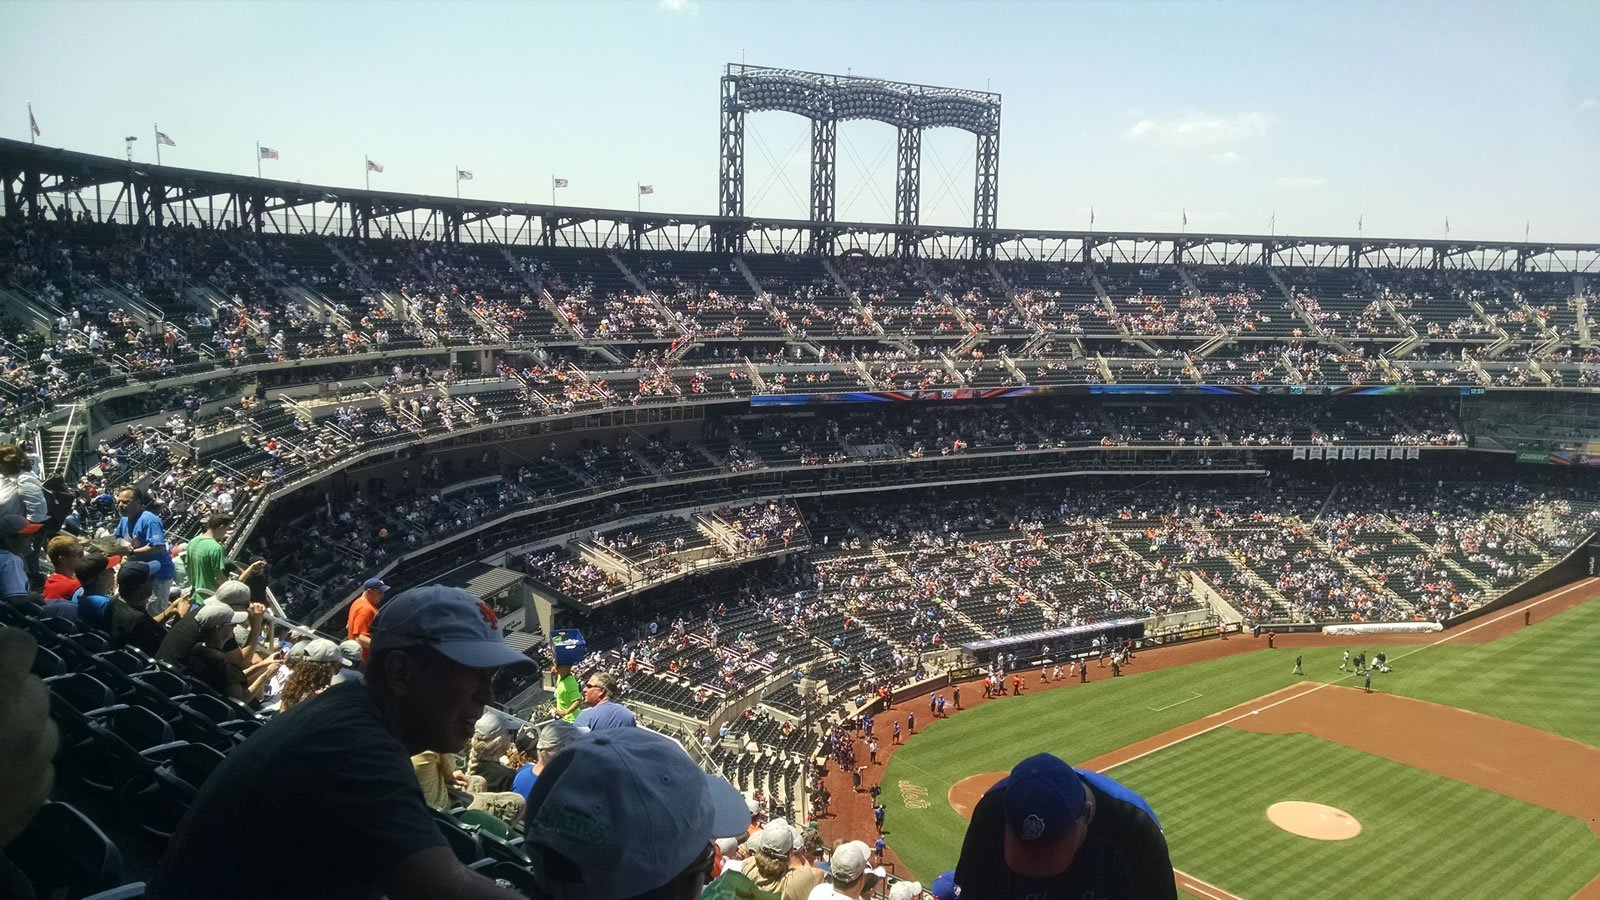 Seat View for Citi Field Section 506, Row 11, Seat 24